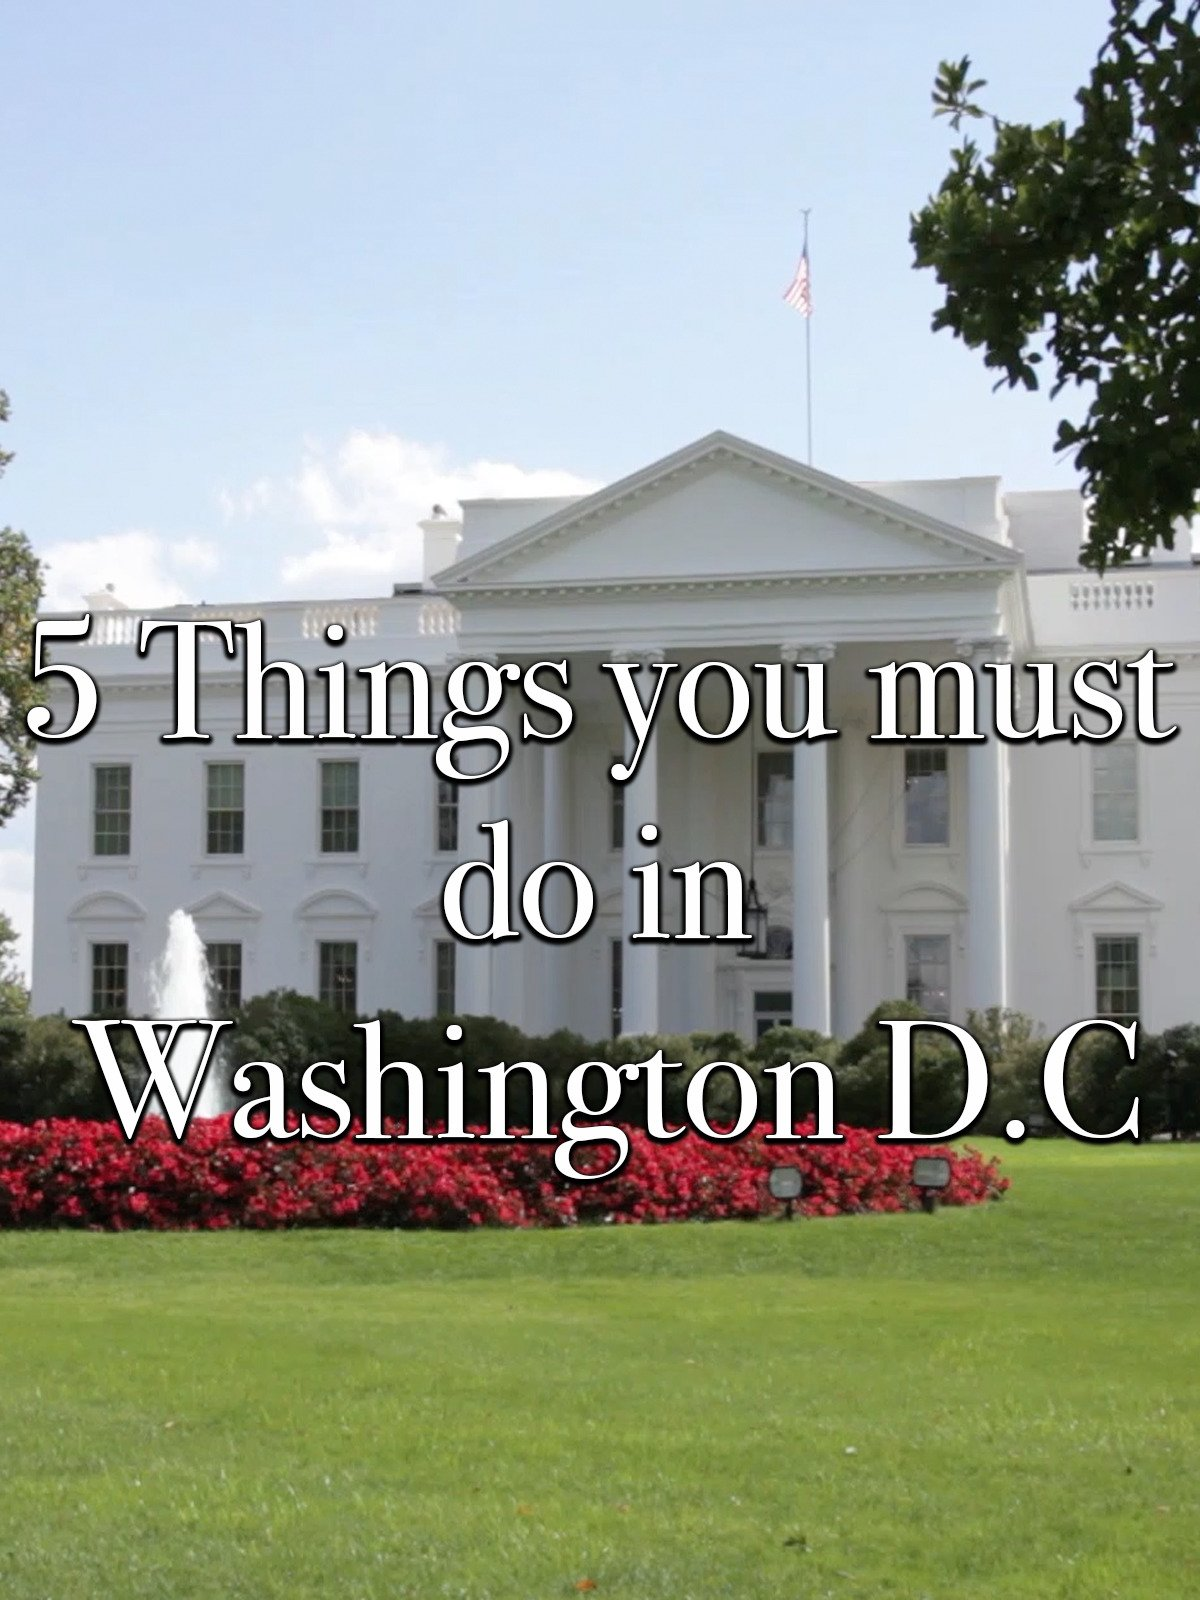 5 Things you must do in Washington D.C